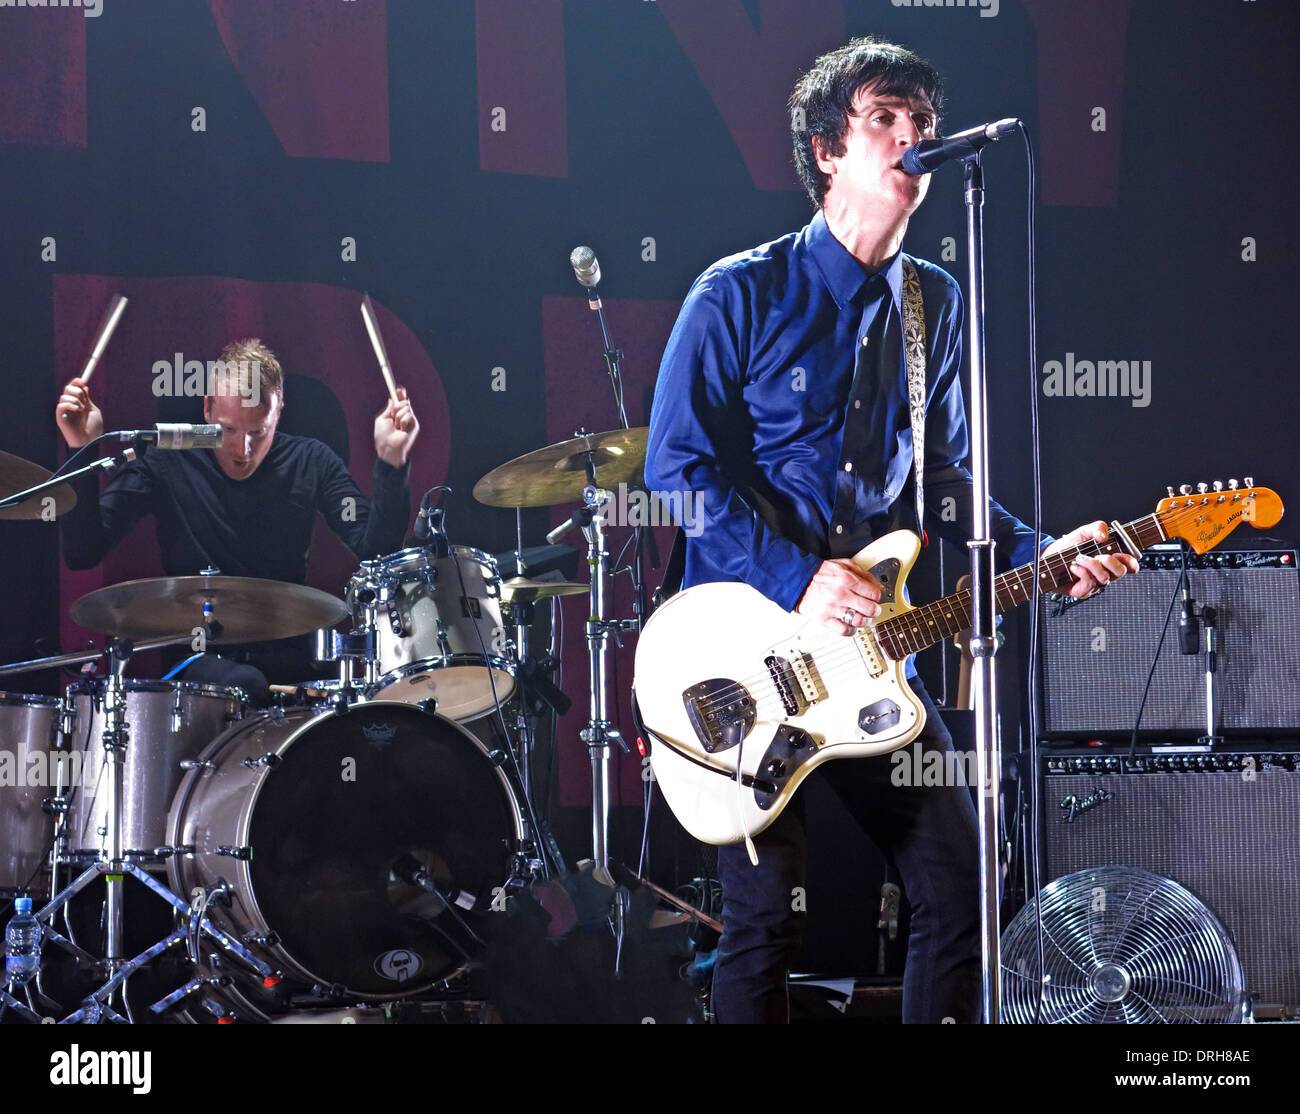 Johnny Marr of Smiths Manchester Academy live on stage playing fender guitar England UK 2013 12-10-2013 - Stock Image